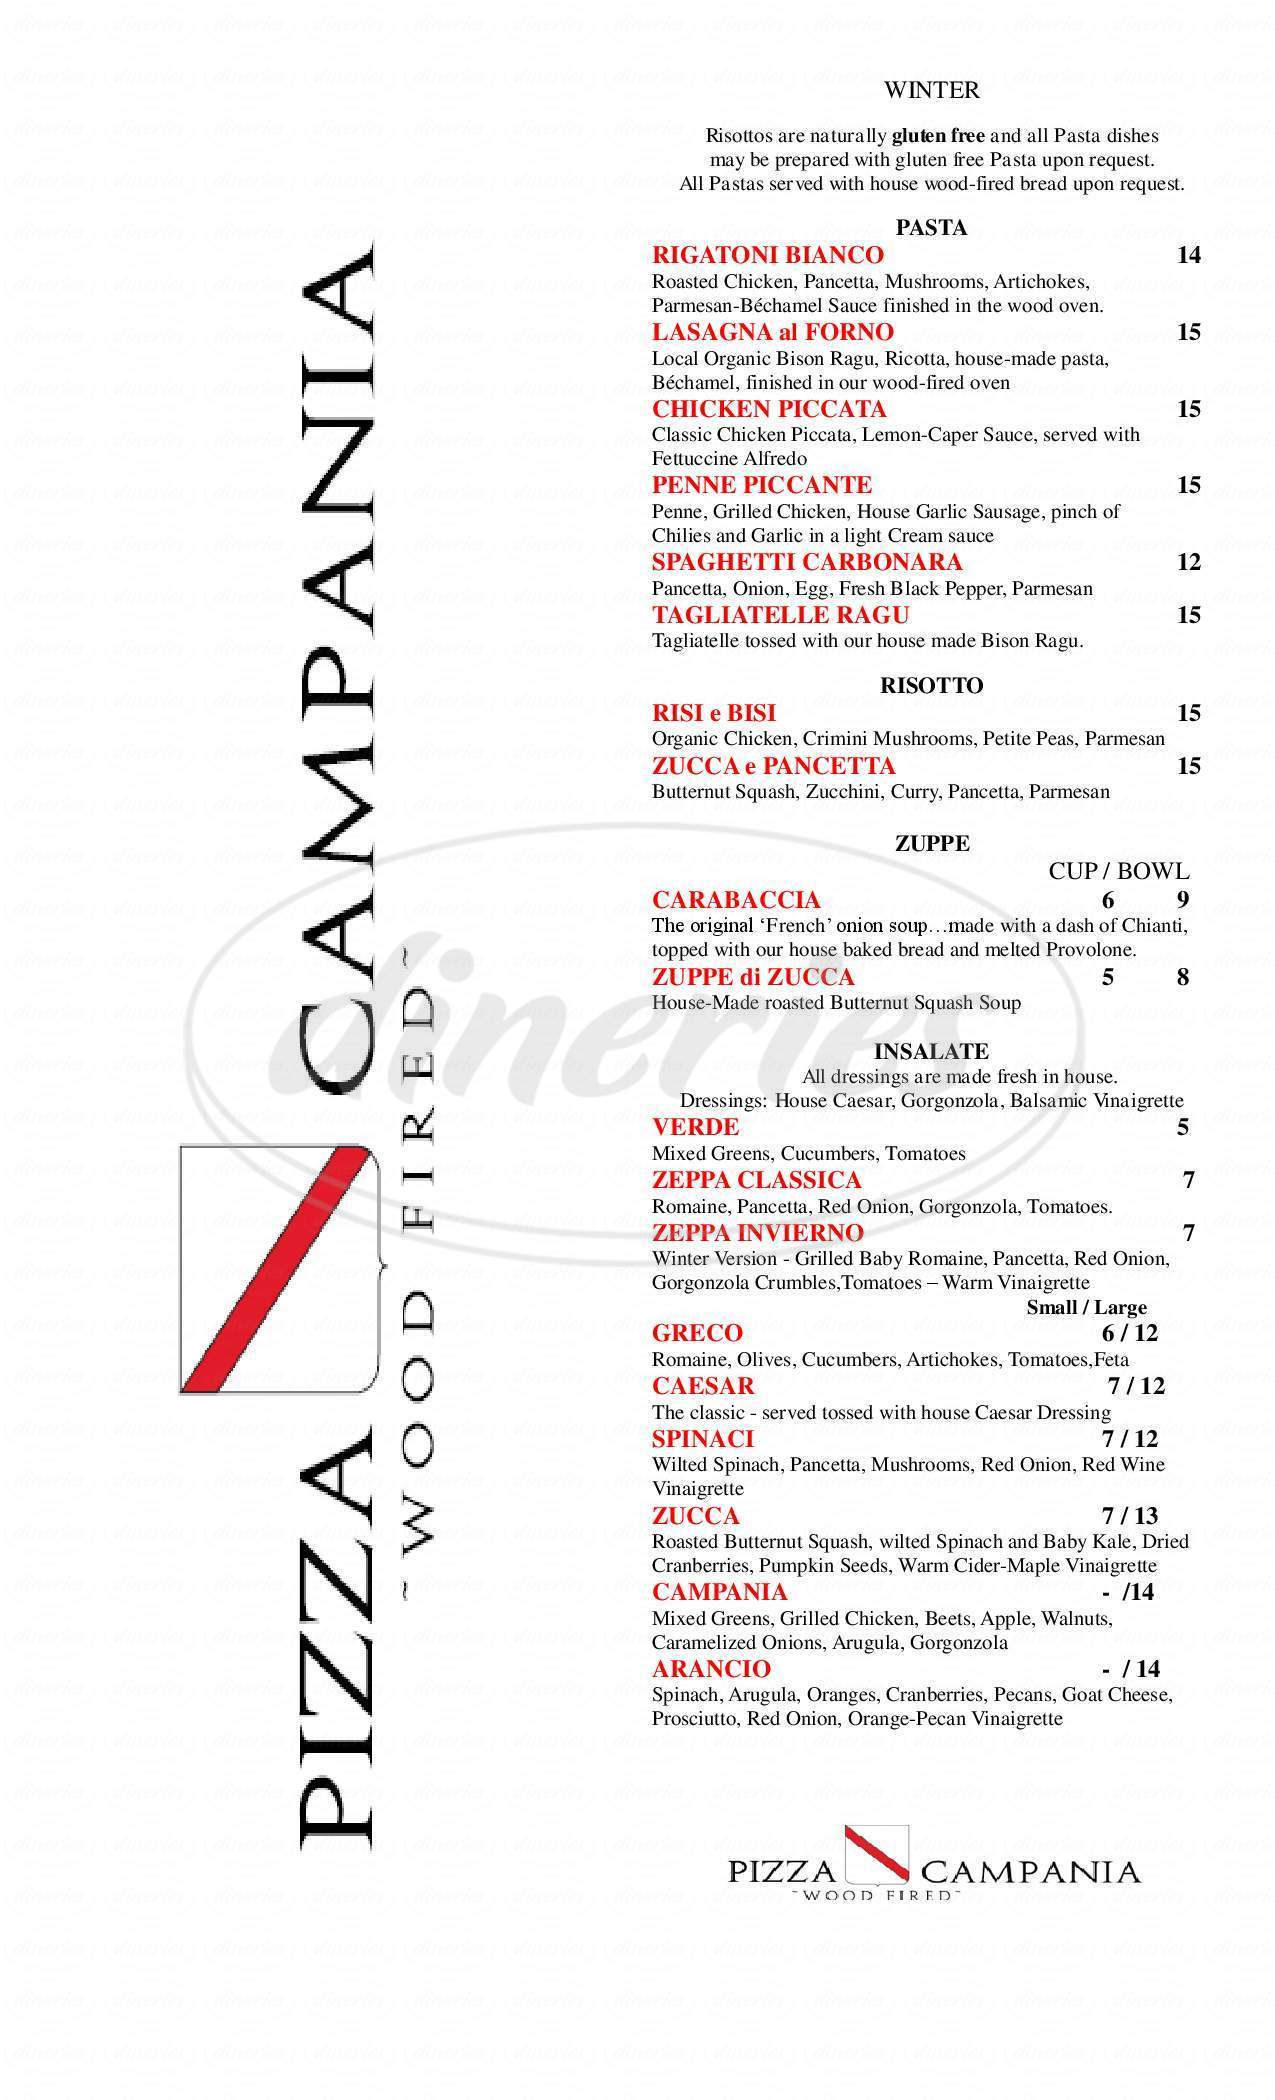 menu for Pizza Campania - Wood Fired